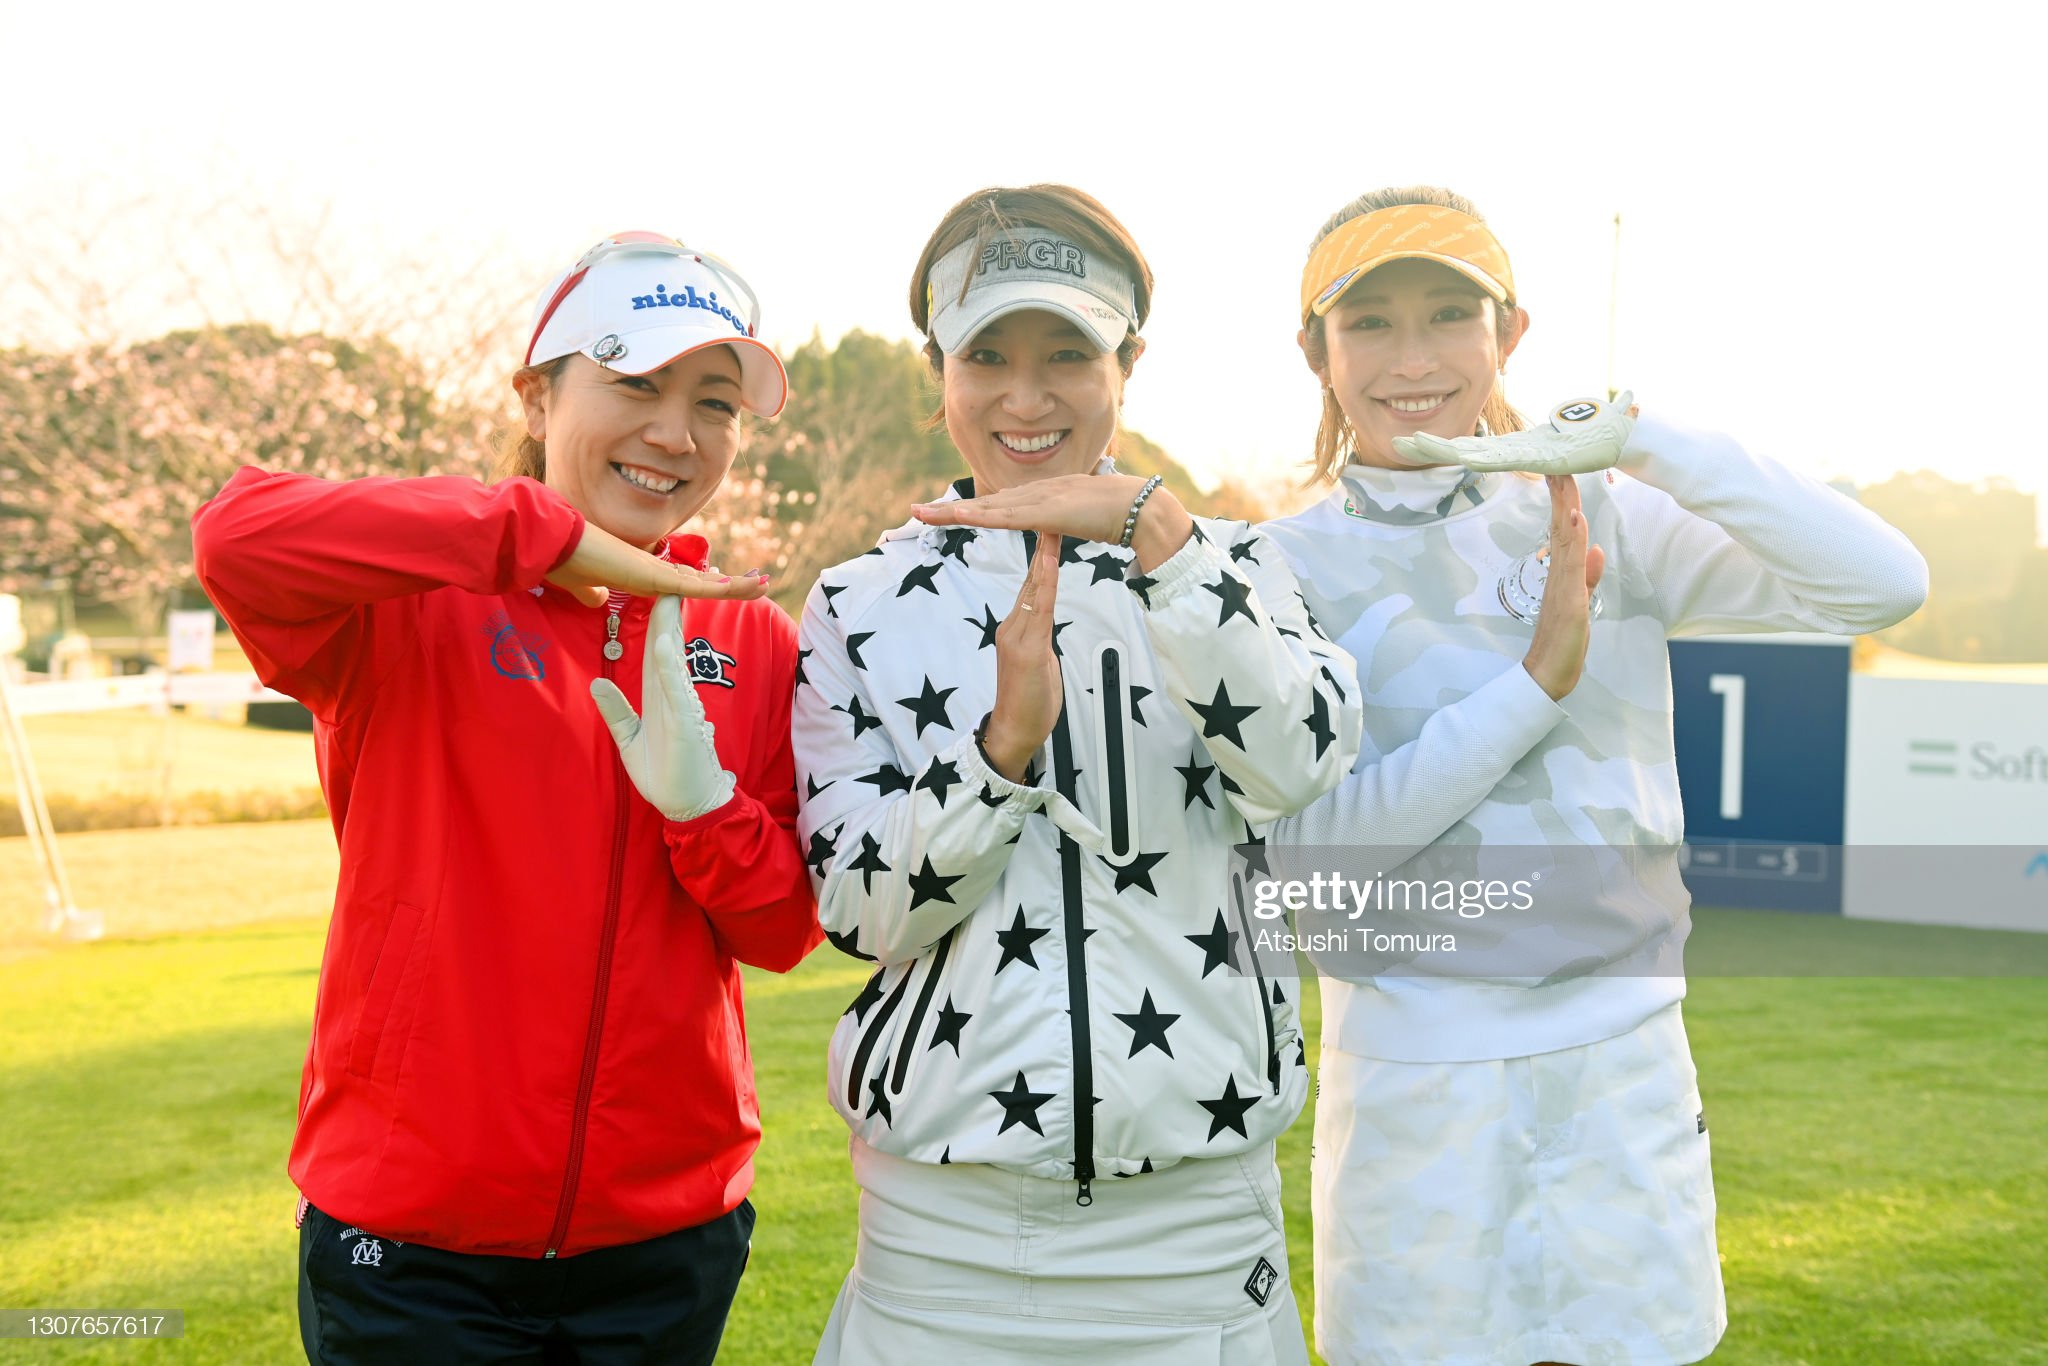 https://media.gettyimages.com/photos/mika-miyazato-asako-fujimoto-and-kumiko-kaneda-of-japan-pose-on-the-picture-id1307657617?s=2048x2048